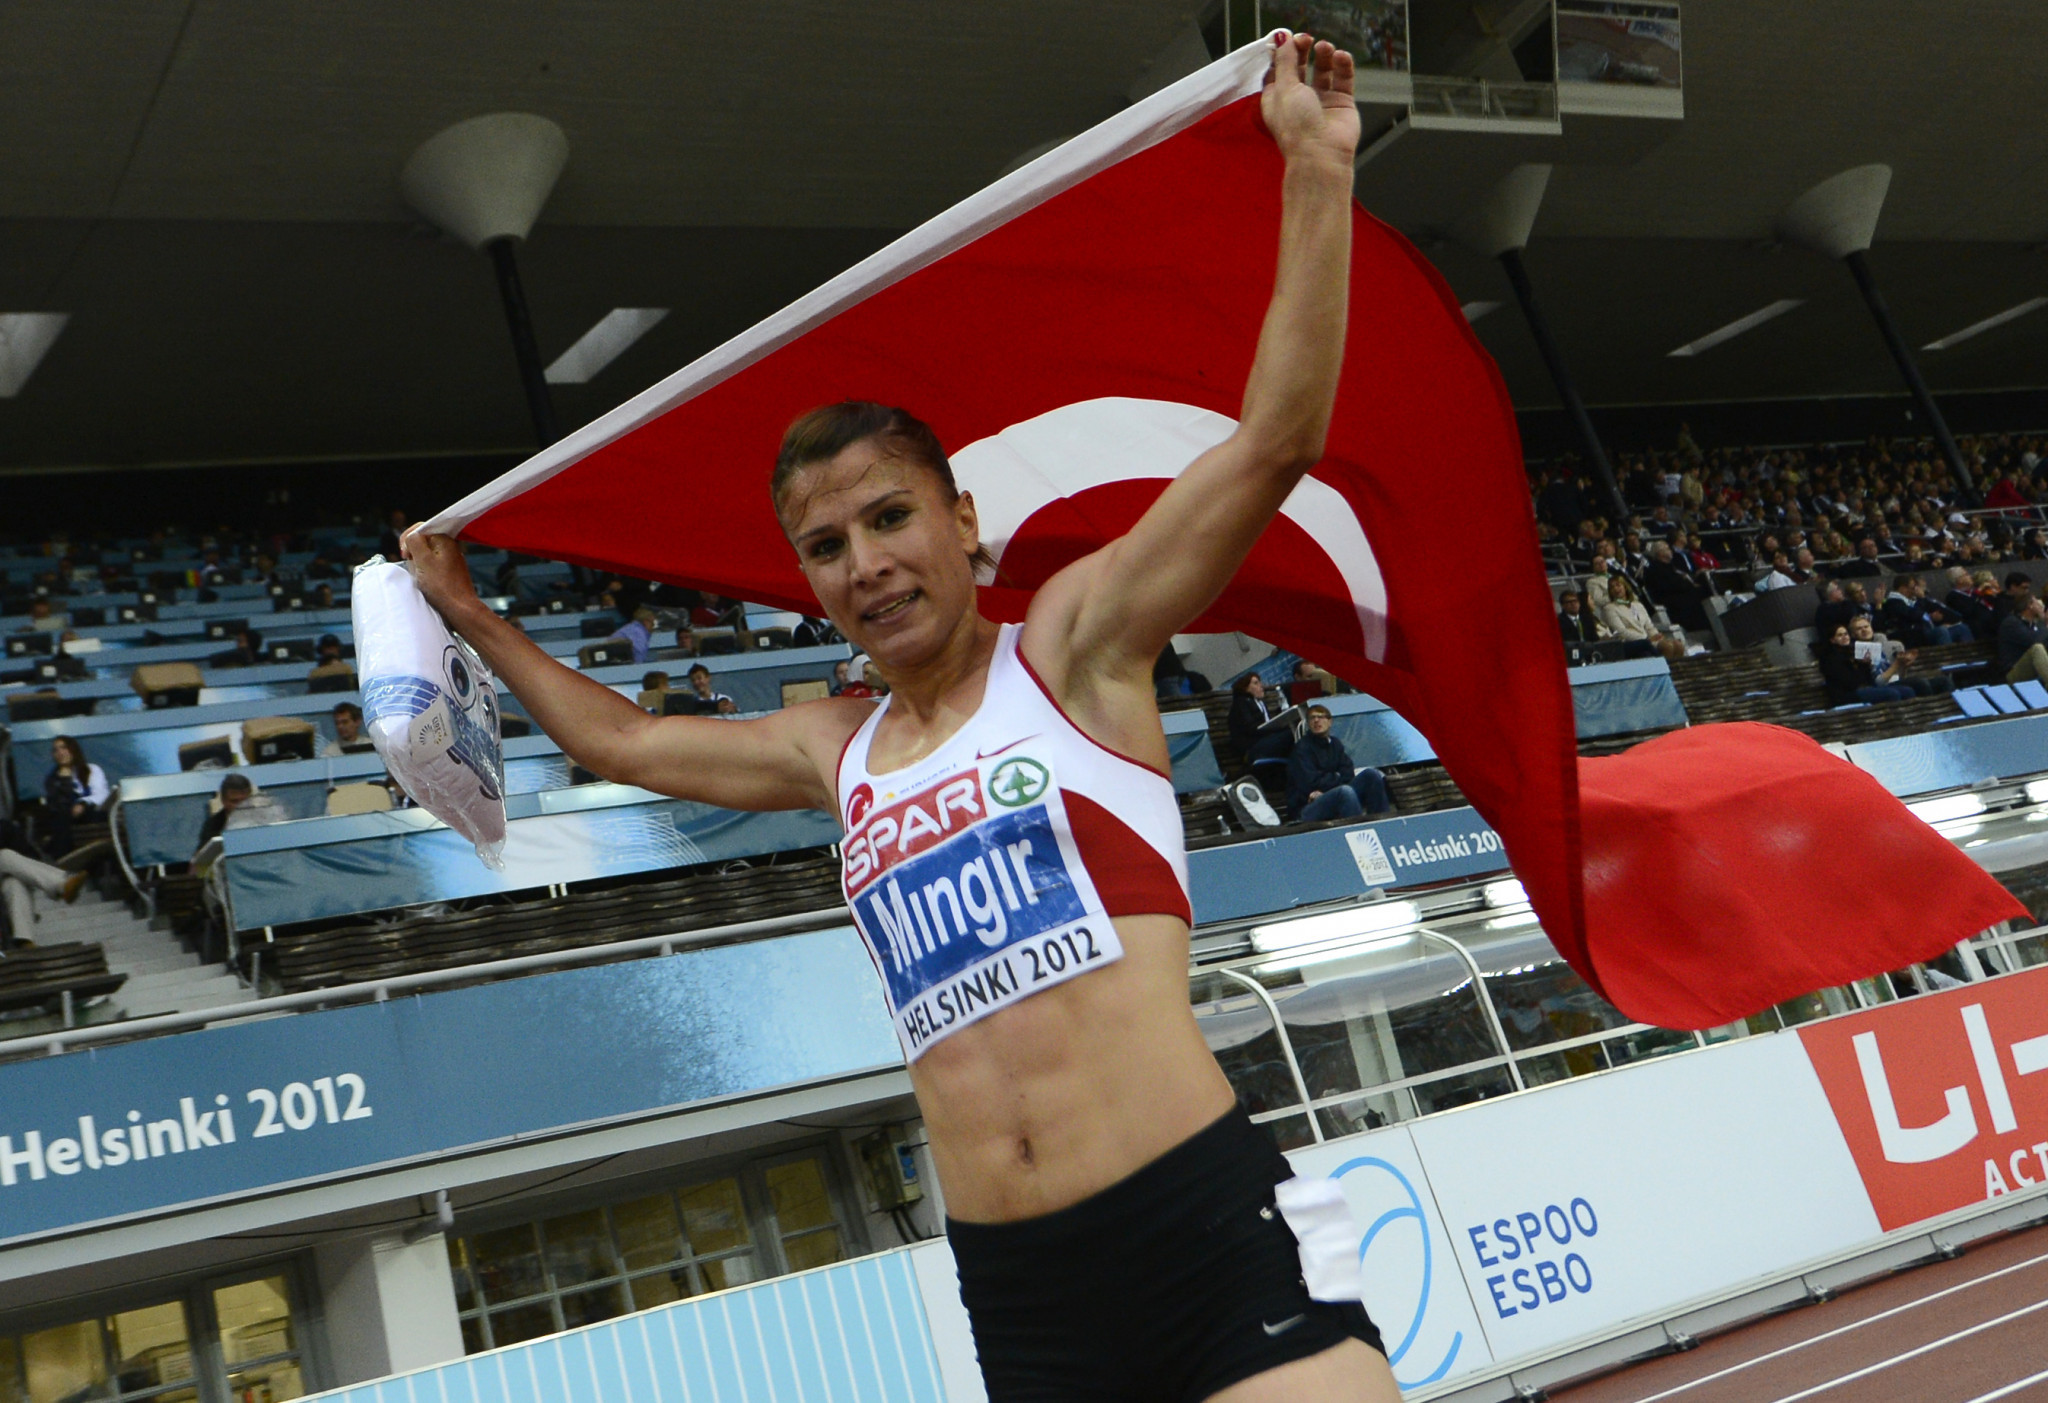 Turkish steeplechaser Gulcan Mingir has been banned for two years and retrospectively disqualified from the London 2012 Olympics ©Getty Images